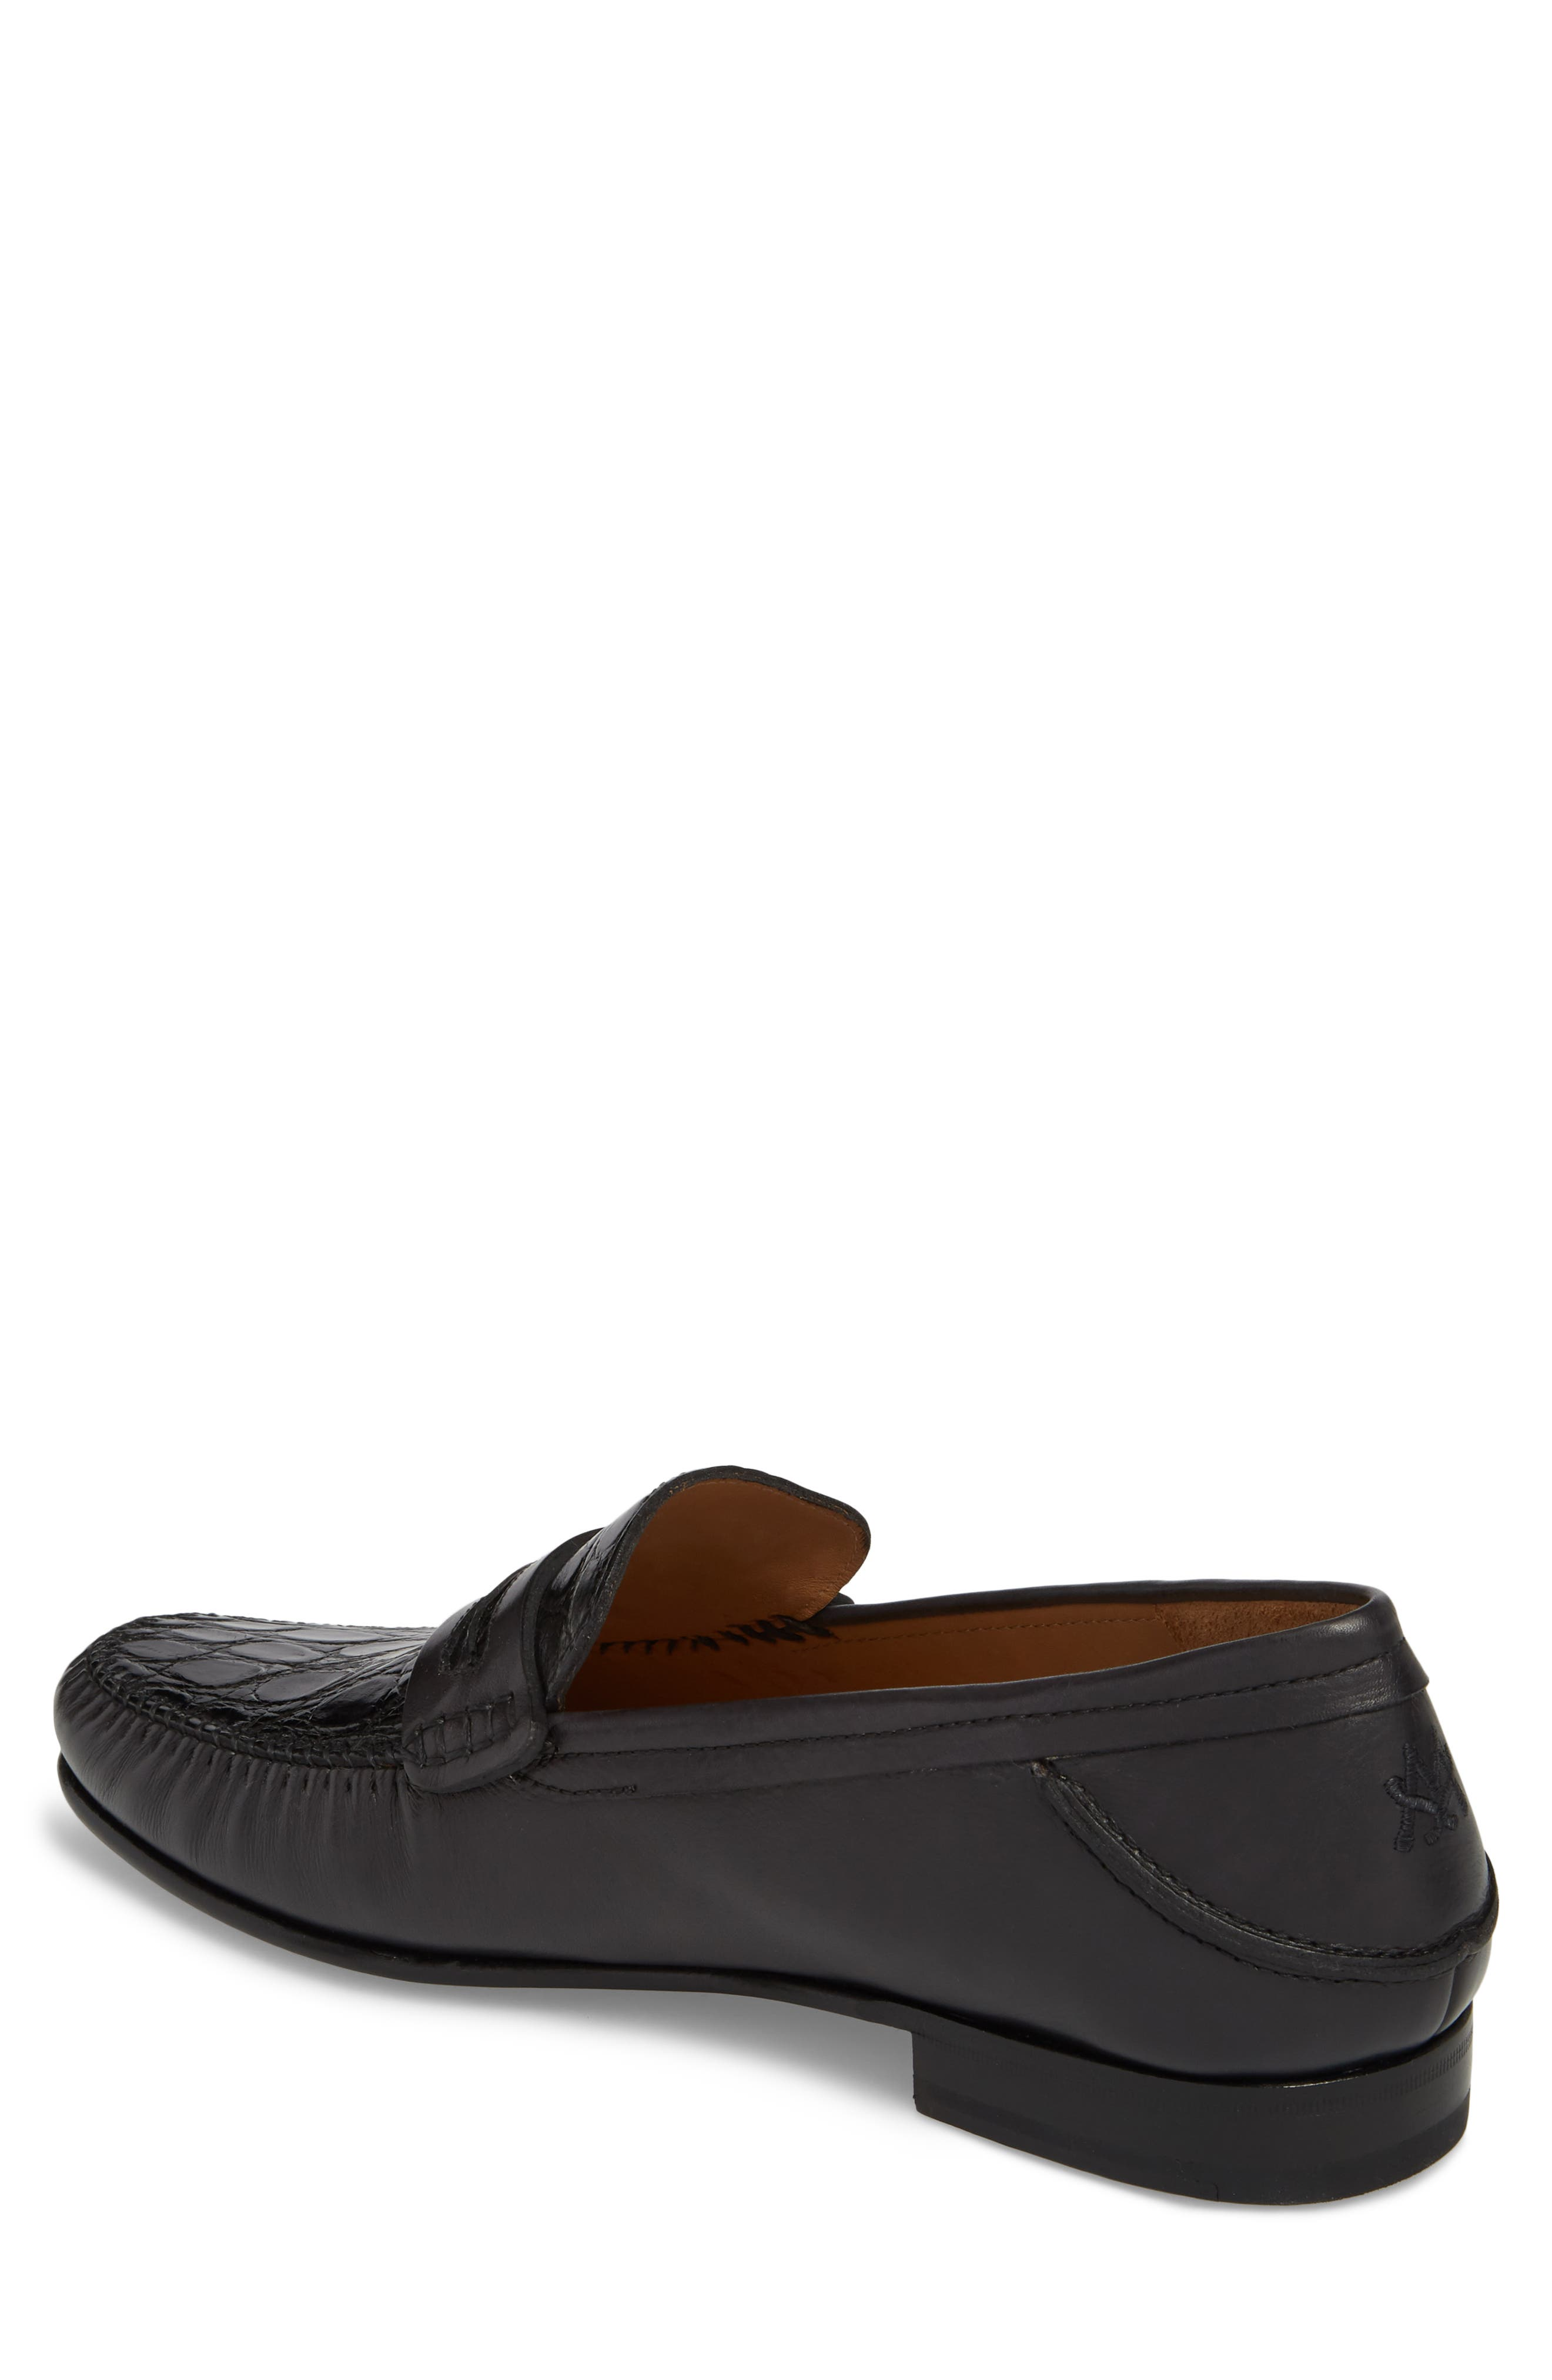 Kronos Moc Toe Penny Loafer,                             Alternate thumbnail 2, color,                             BLACK LEATHER